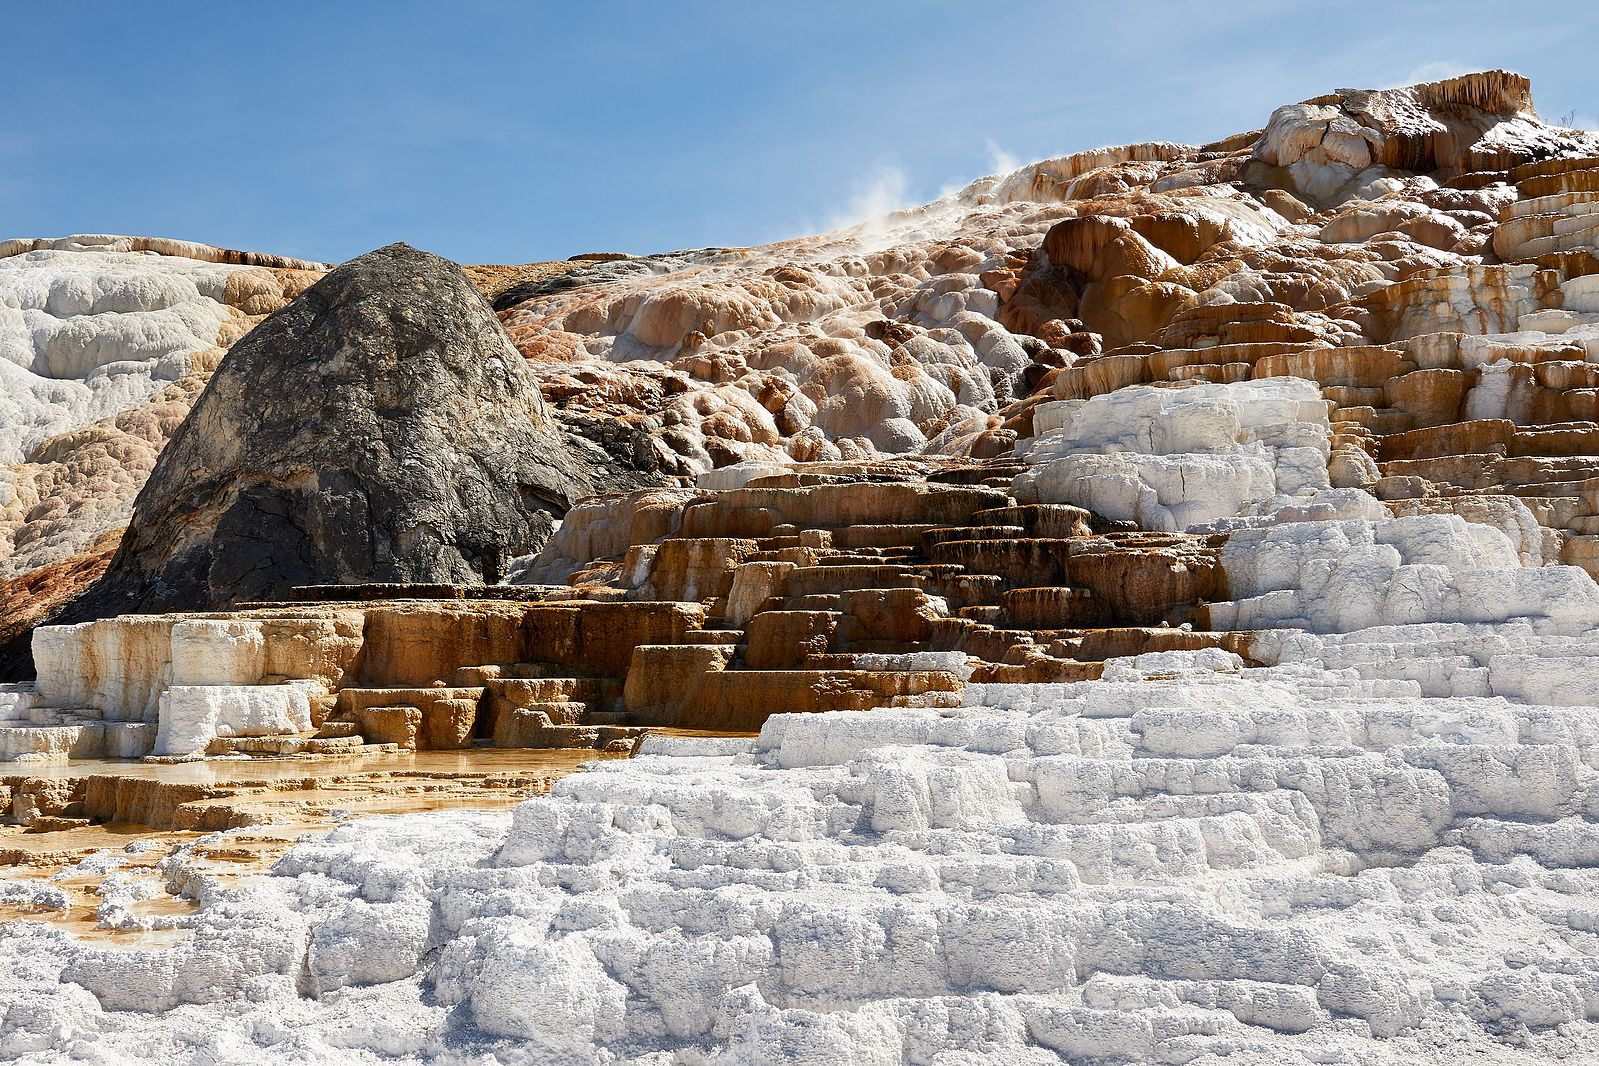 The white and brown natural steps show the formation of travertine.